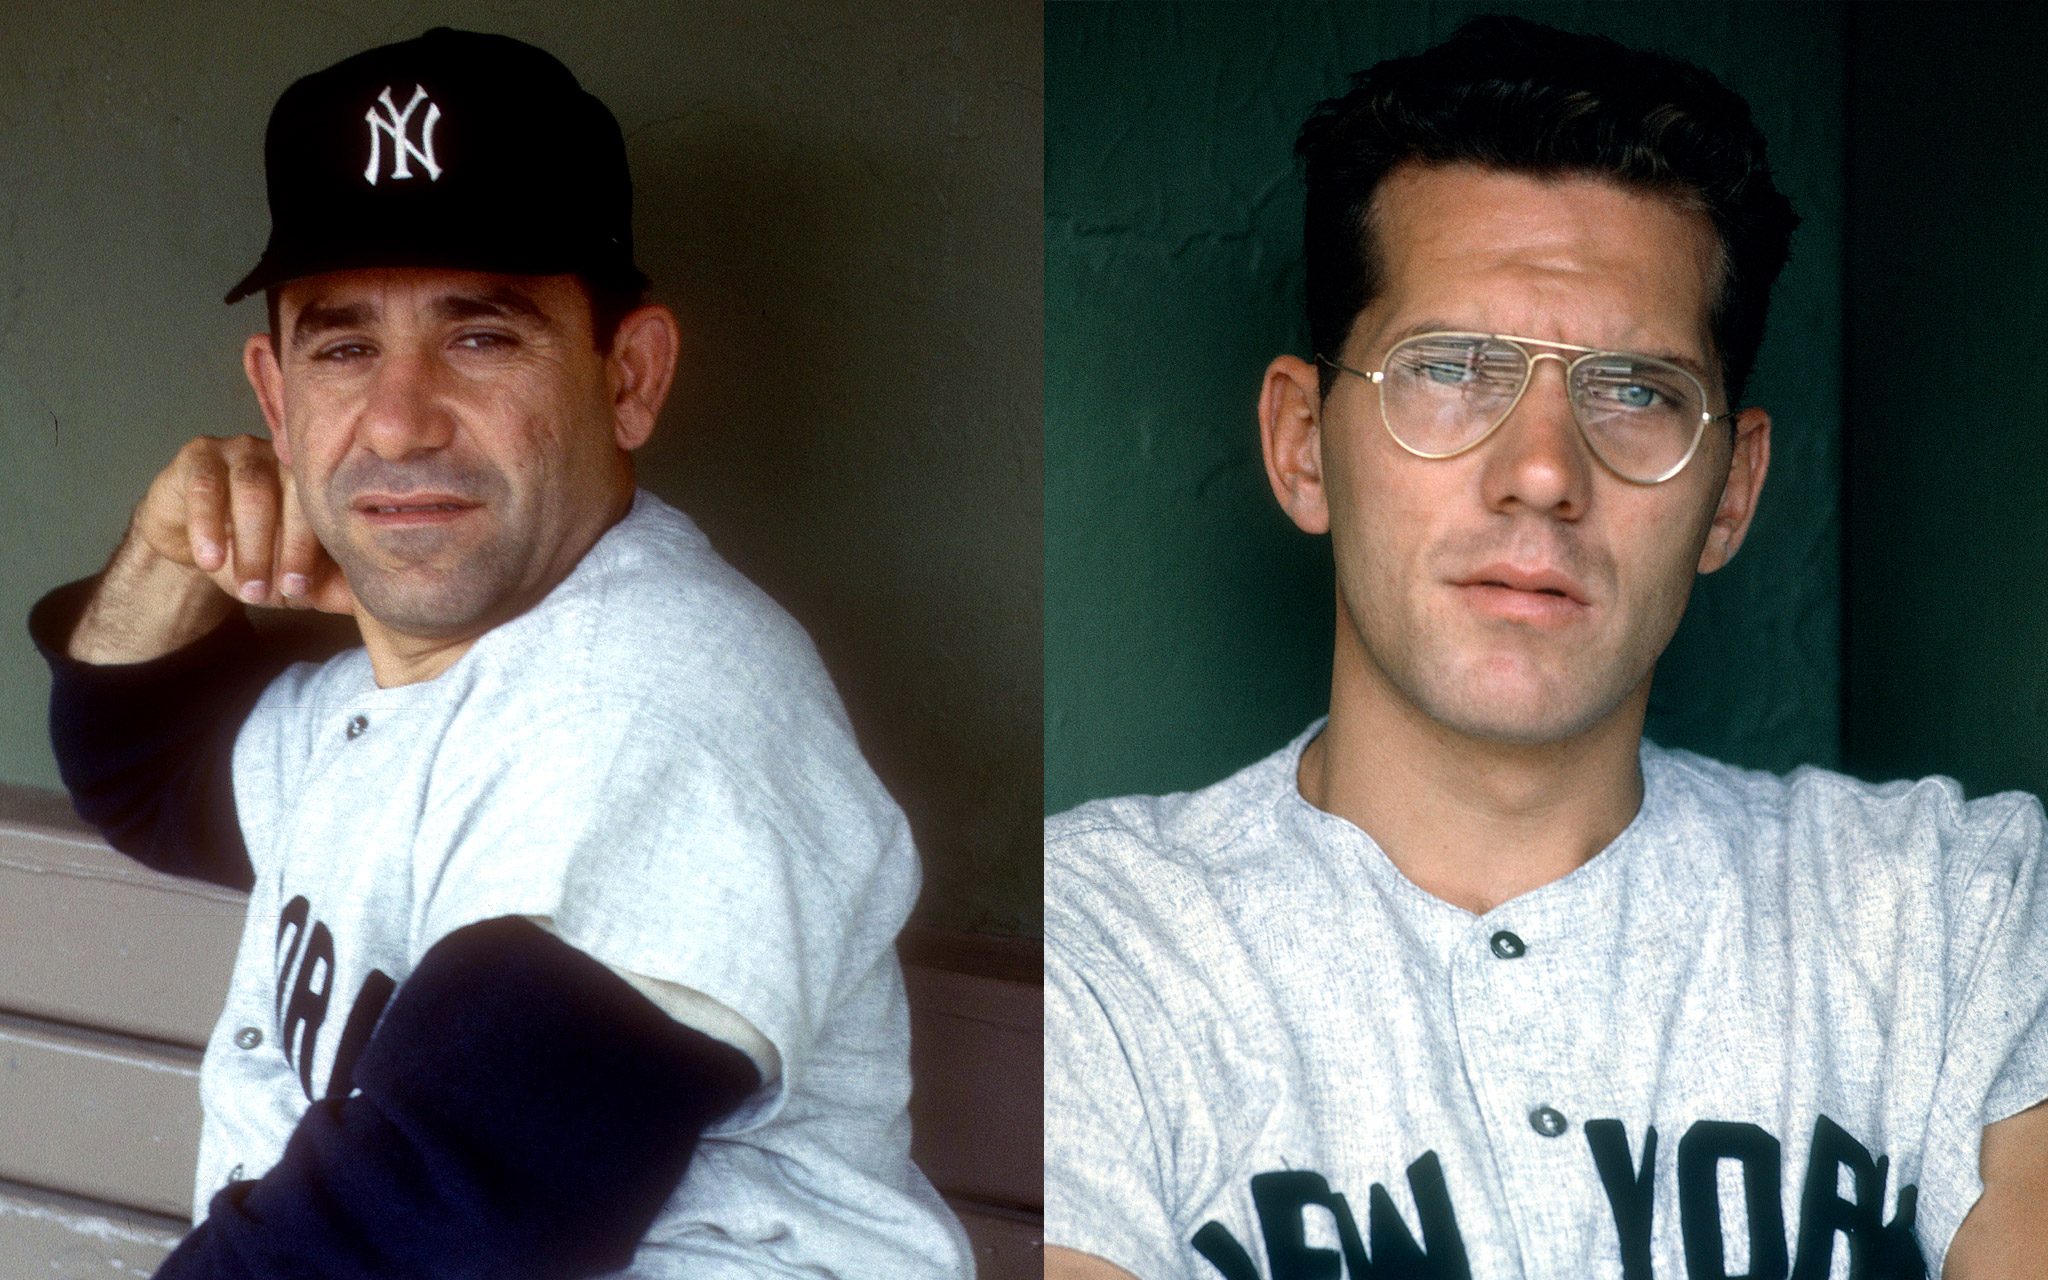 Yogi Berra and Phil Linz